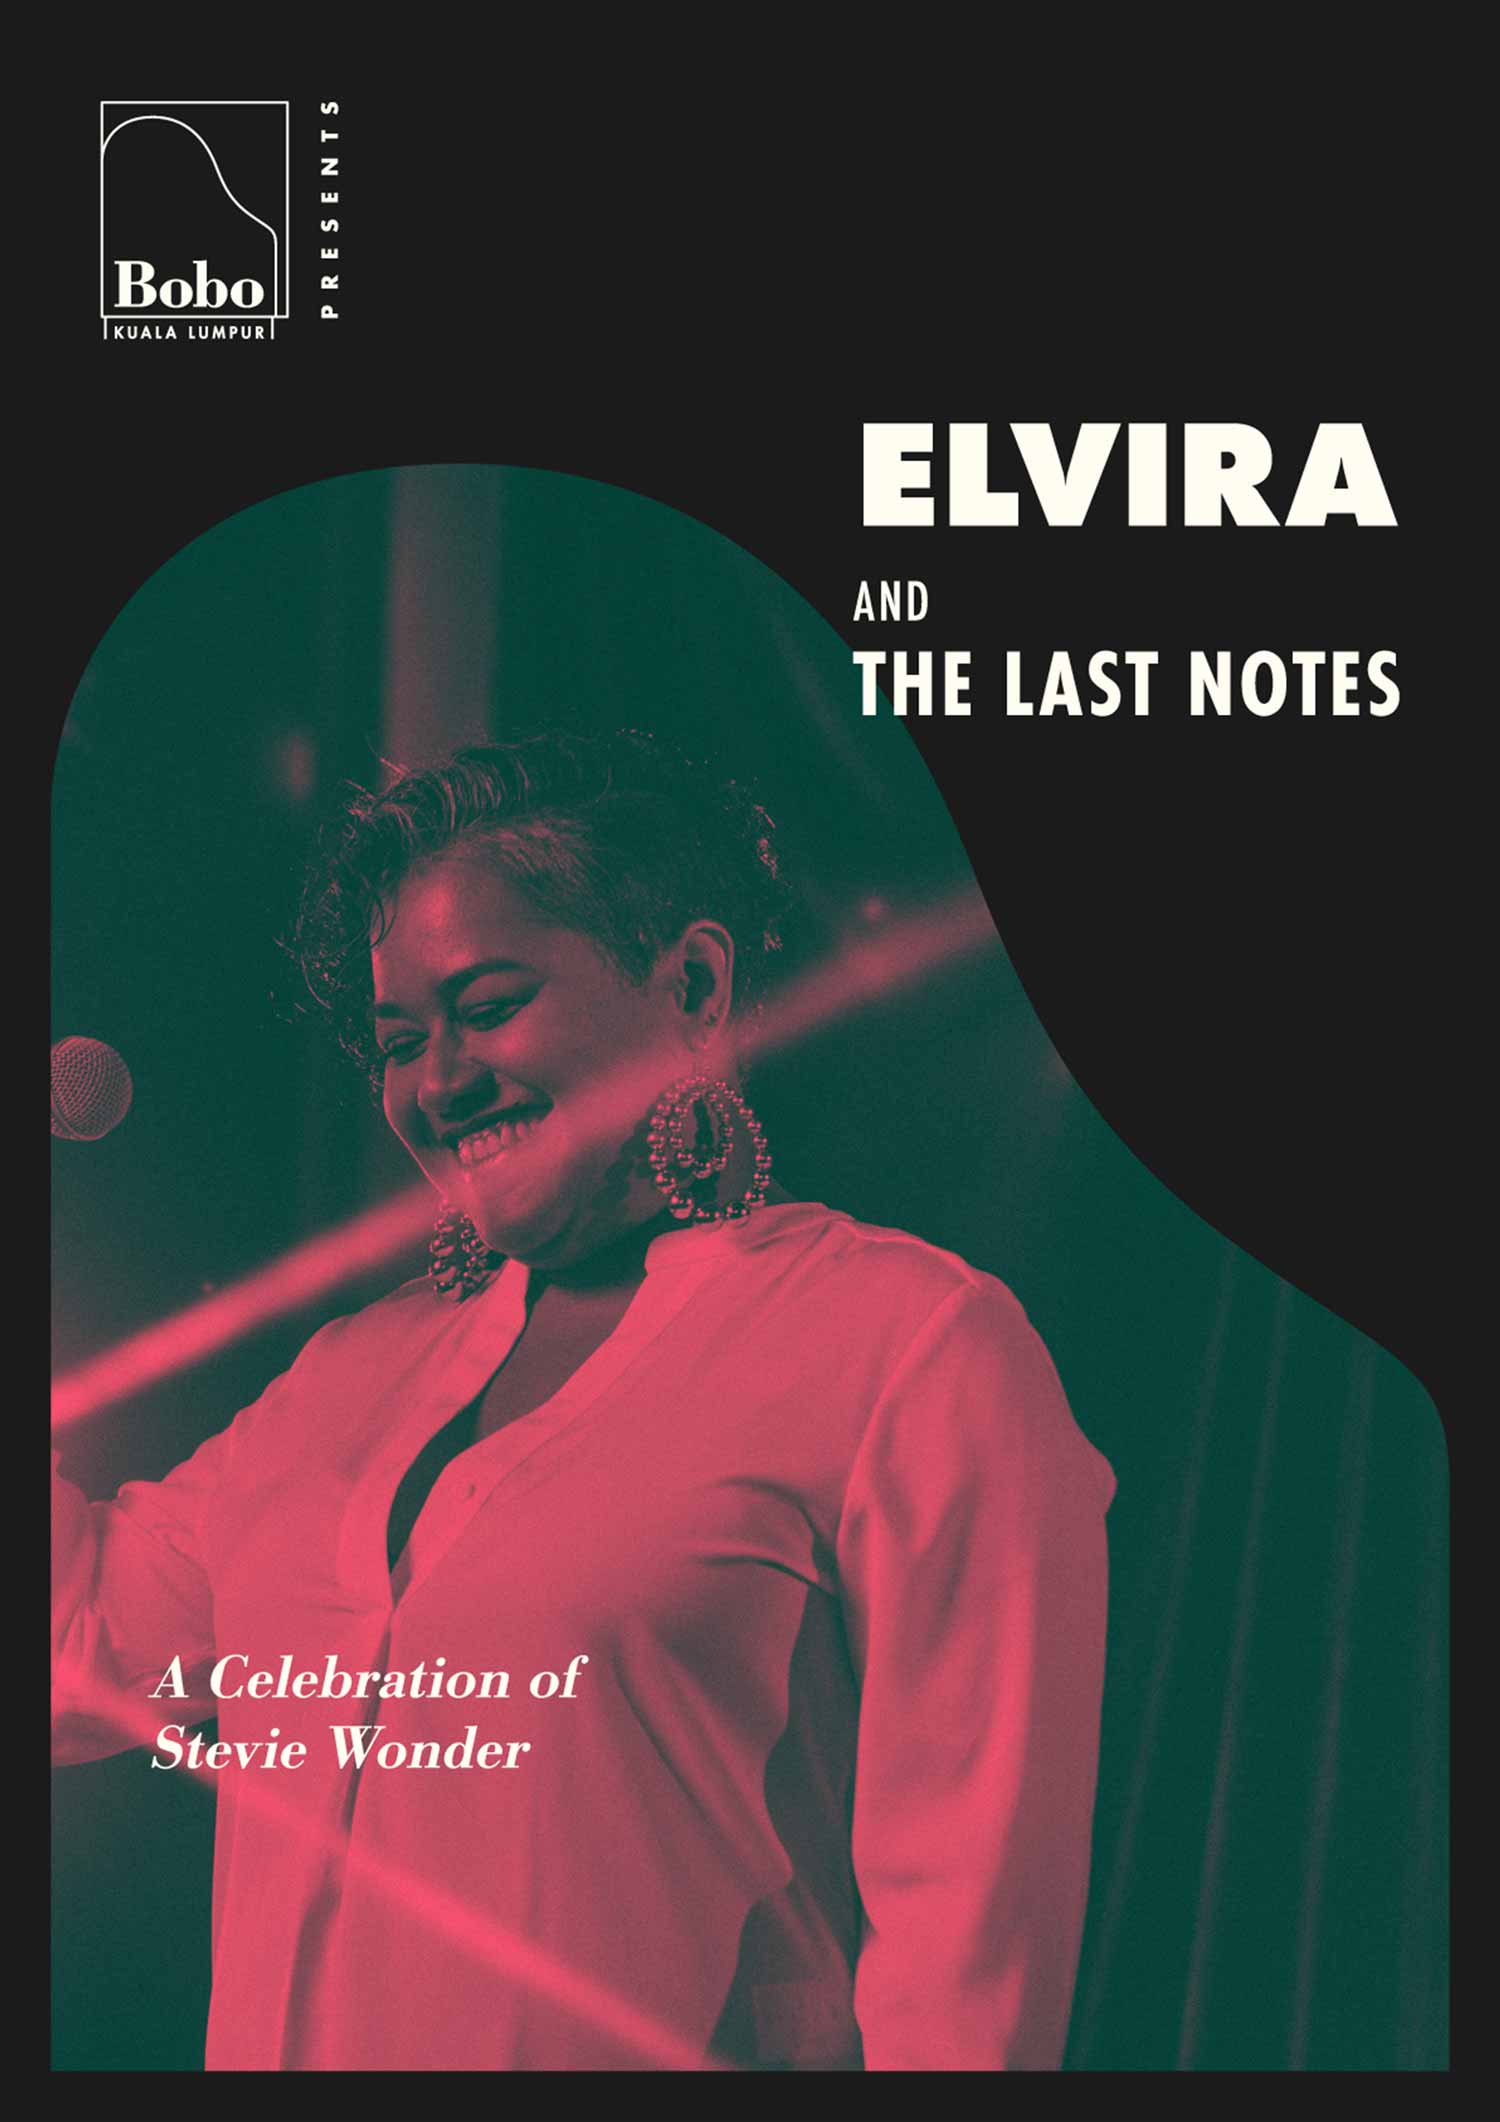 Elvira and The Last Notes